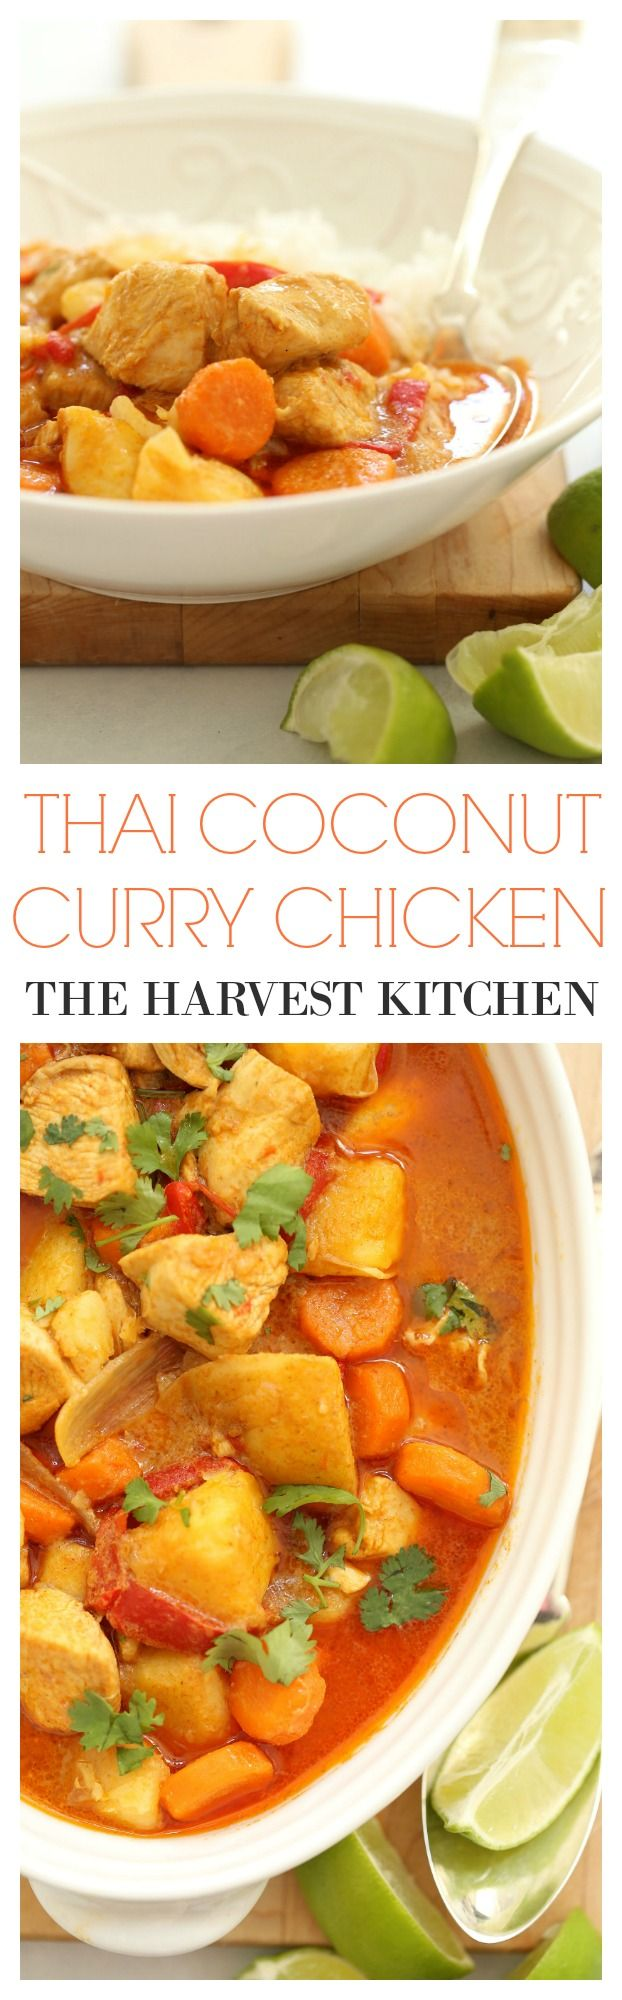 This stew-like Thai Coconut Curry Chicken is loaded with chunks of potato, lean chicken, carrots, onion, red bell pepper all simmered in a rich exotic tasting coconut curry sauce. An easy chicken dinner to make any night of the week! @theharvestkitchen.com